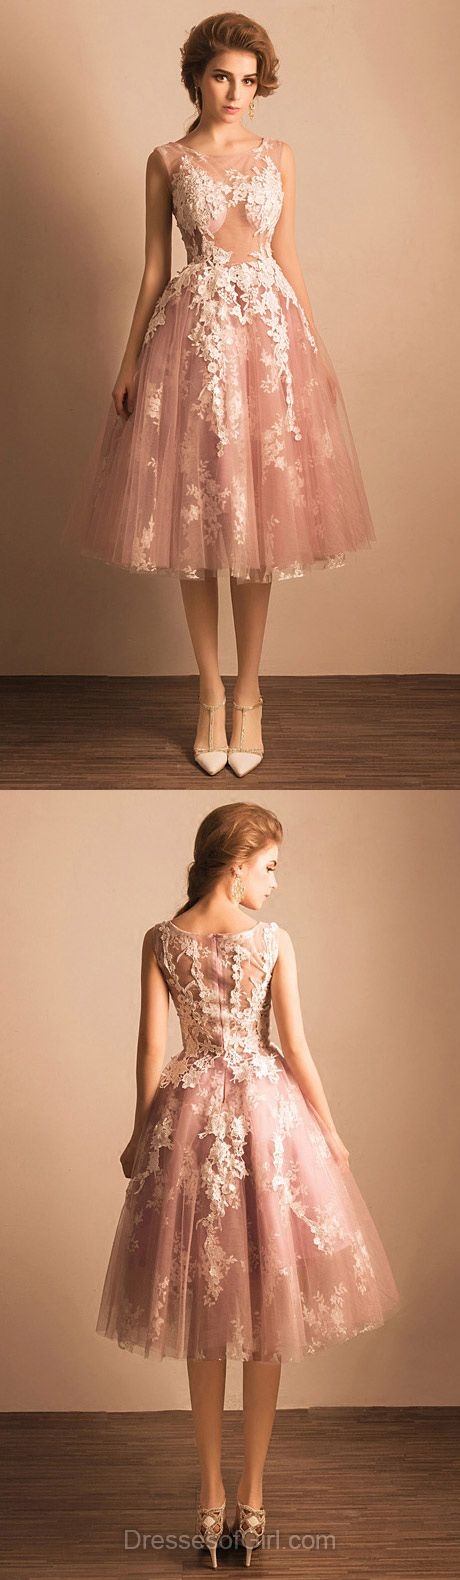 Vintage Prom Dress, Short Prom Dresses, Princess Homecoming Dress, Tulle Homecoming Dresses, Cheap Cocktail Dress